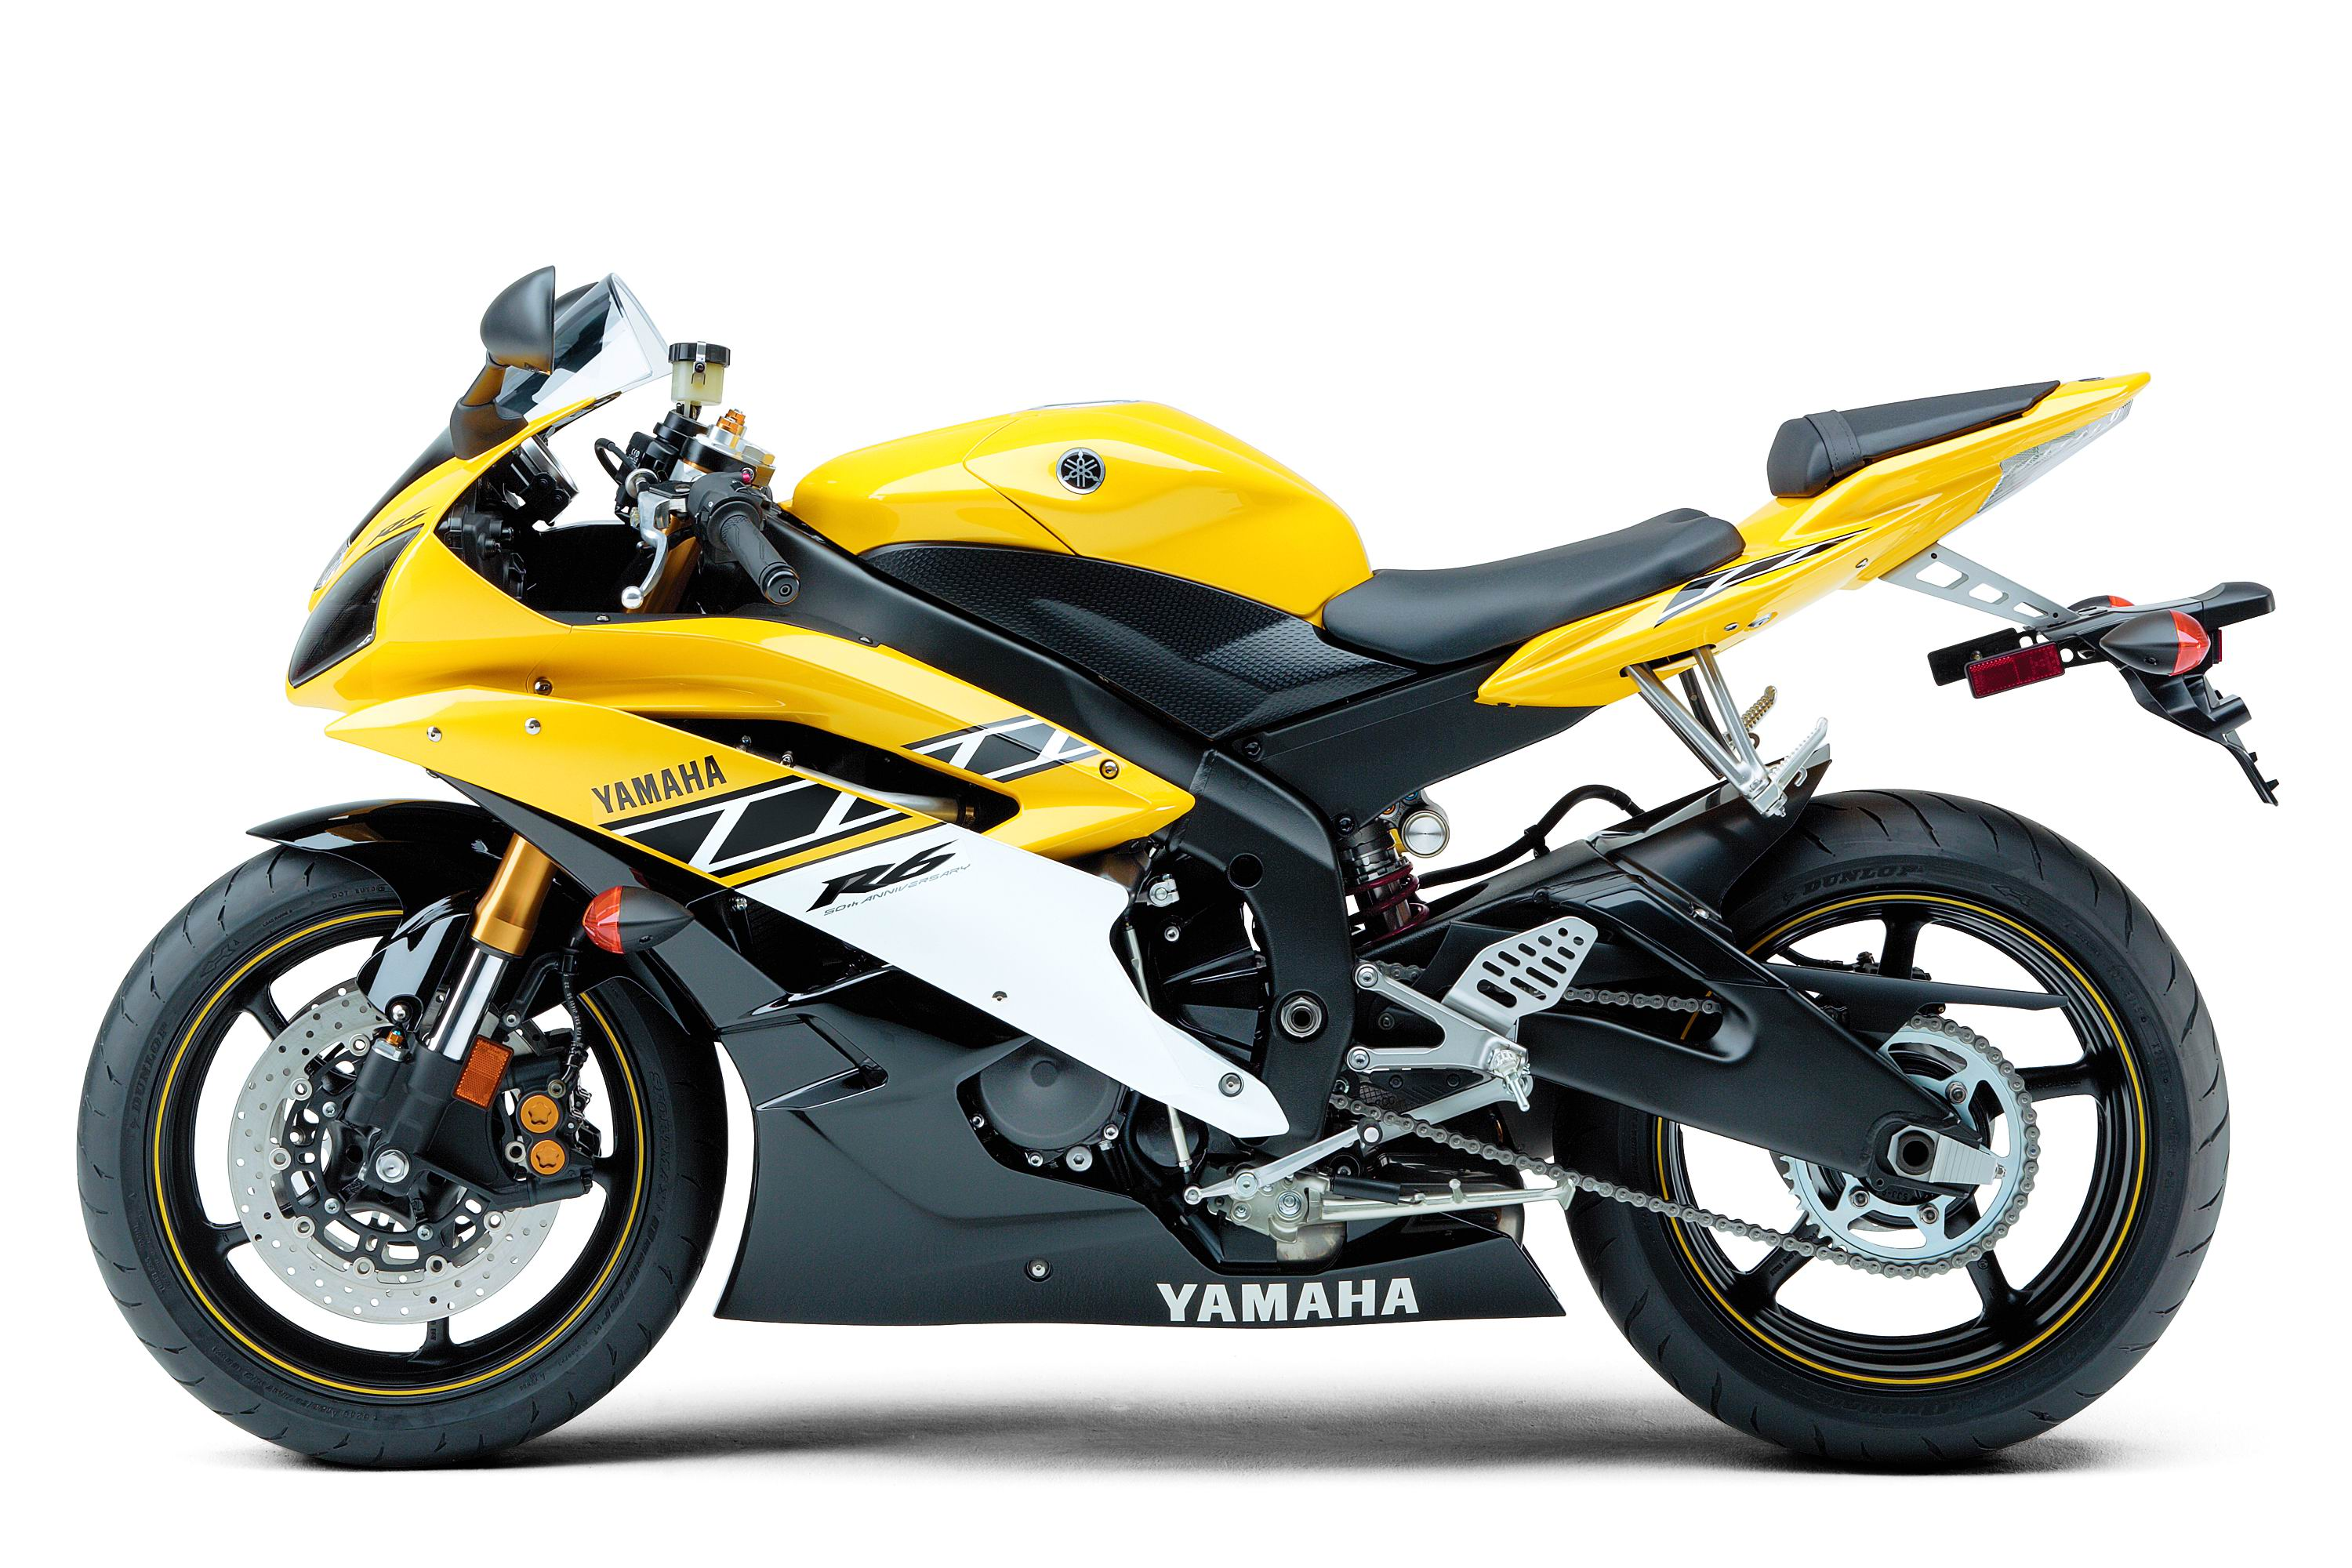 2006 yamaha yzf r6 review top speed for 2006 yamaha yzf r6